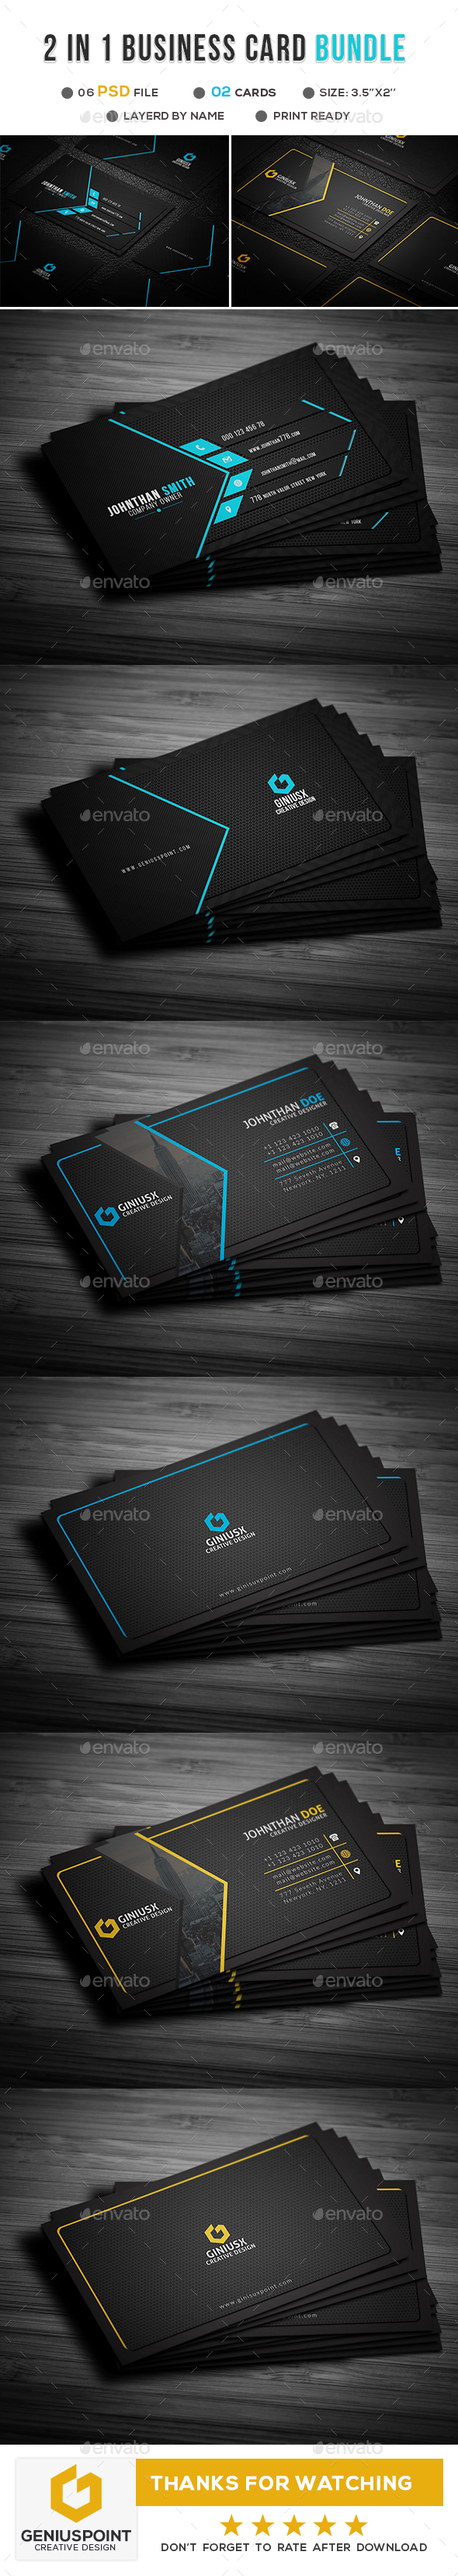 GraphicRiver 2 in 1 Business Card Bundle 21139867